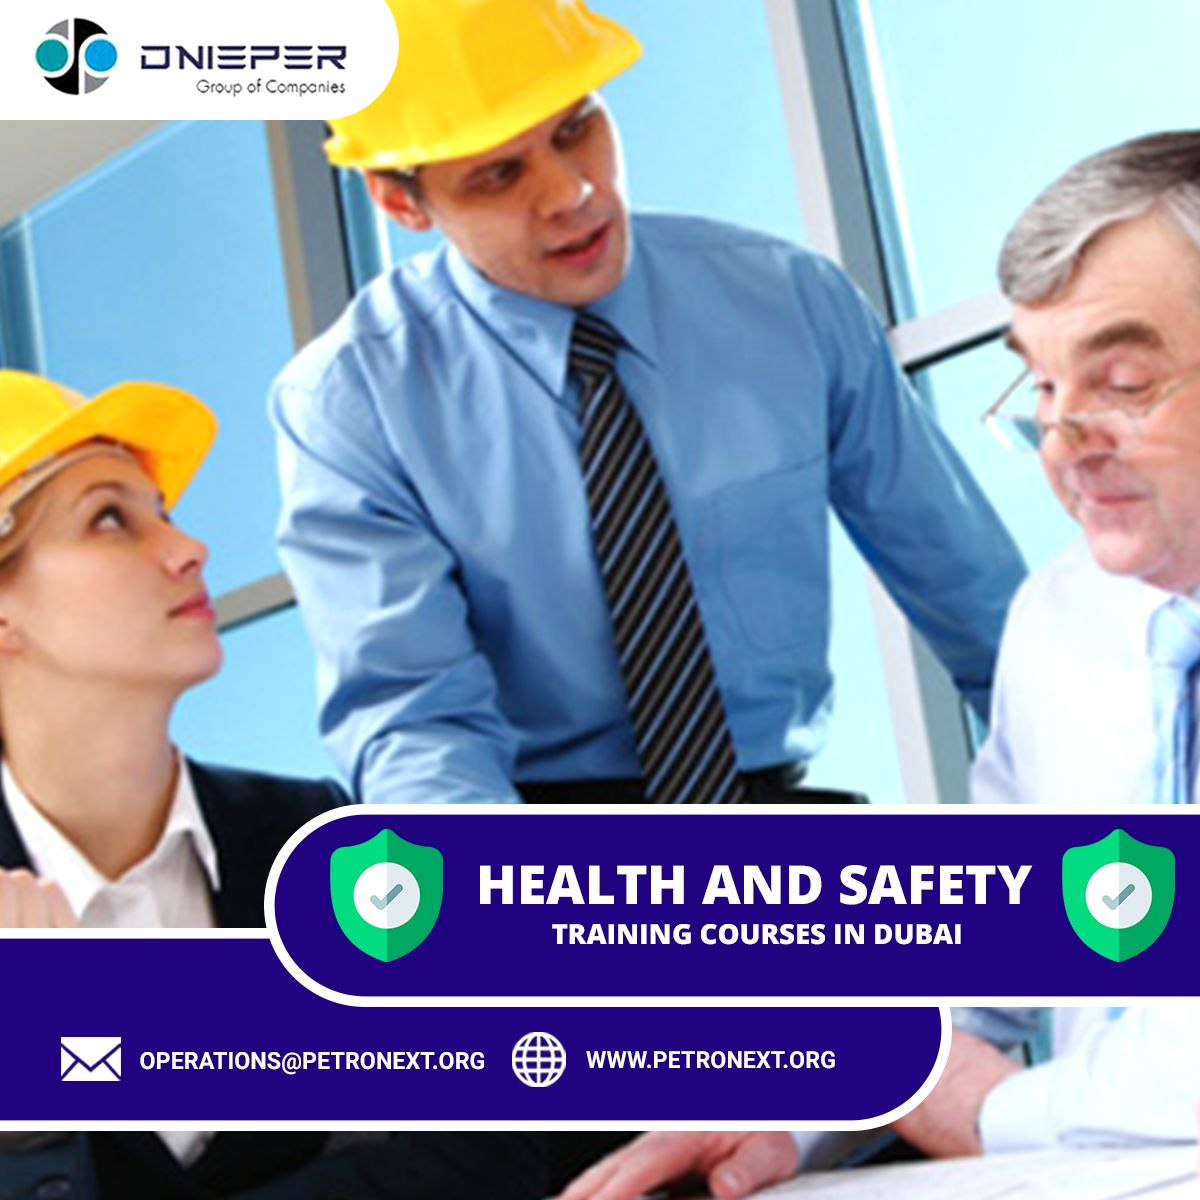 Petronext International is leading health and safety